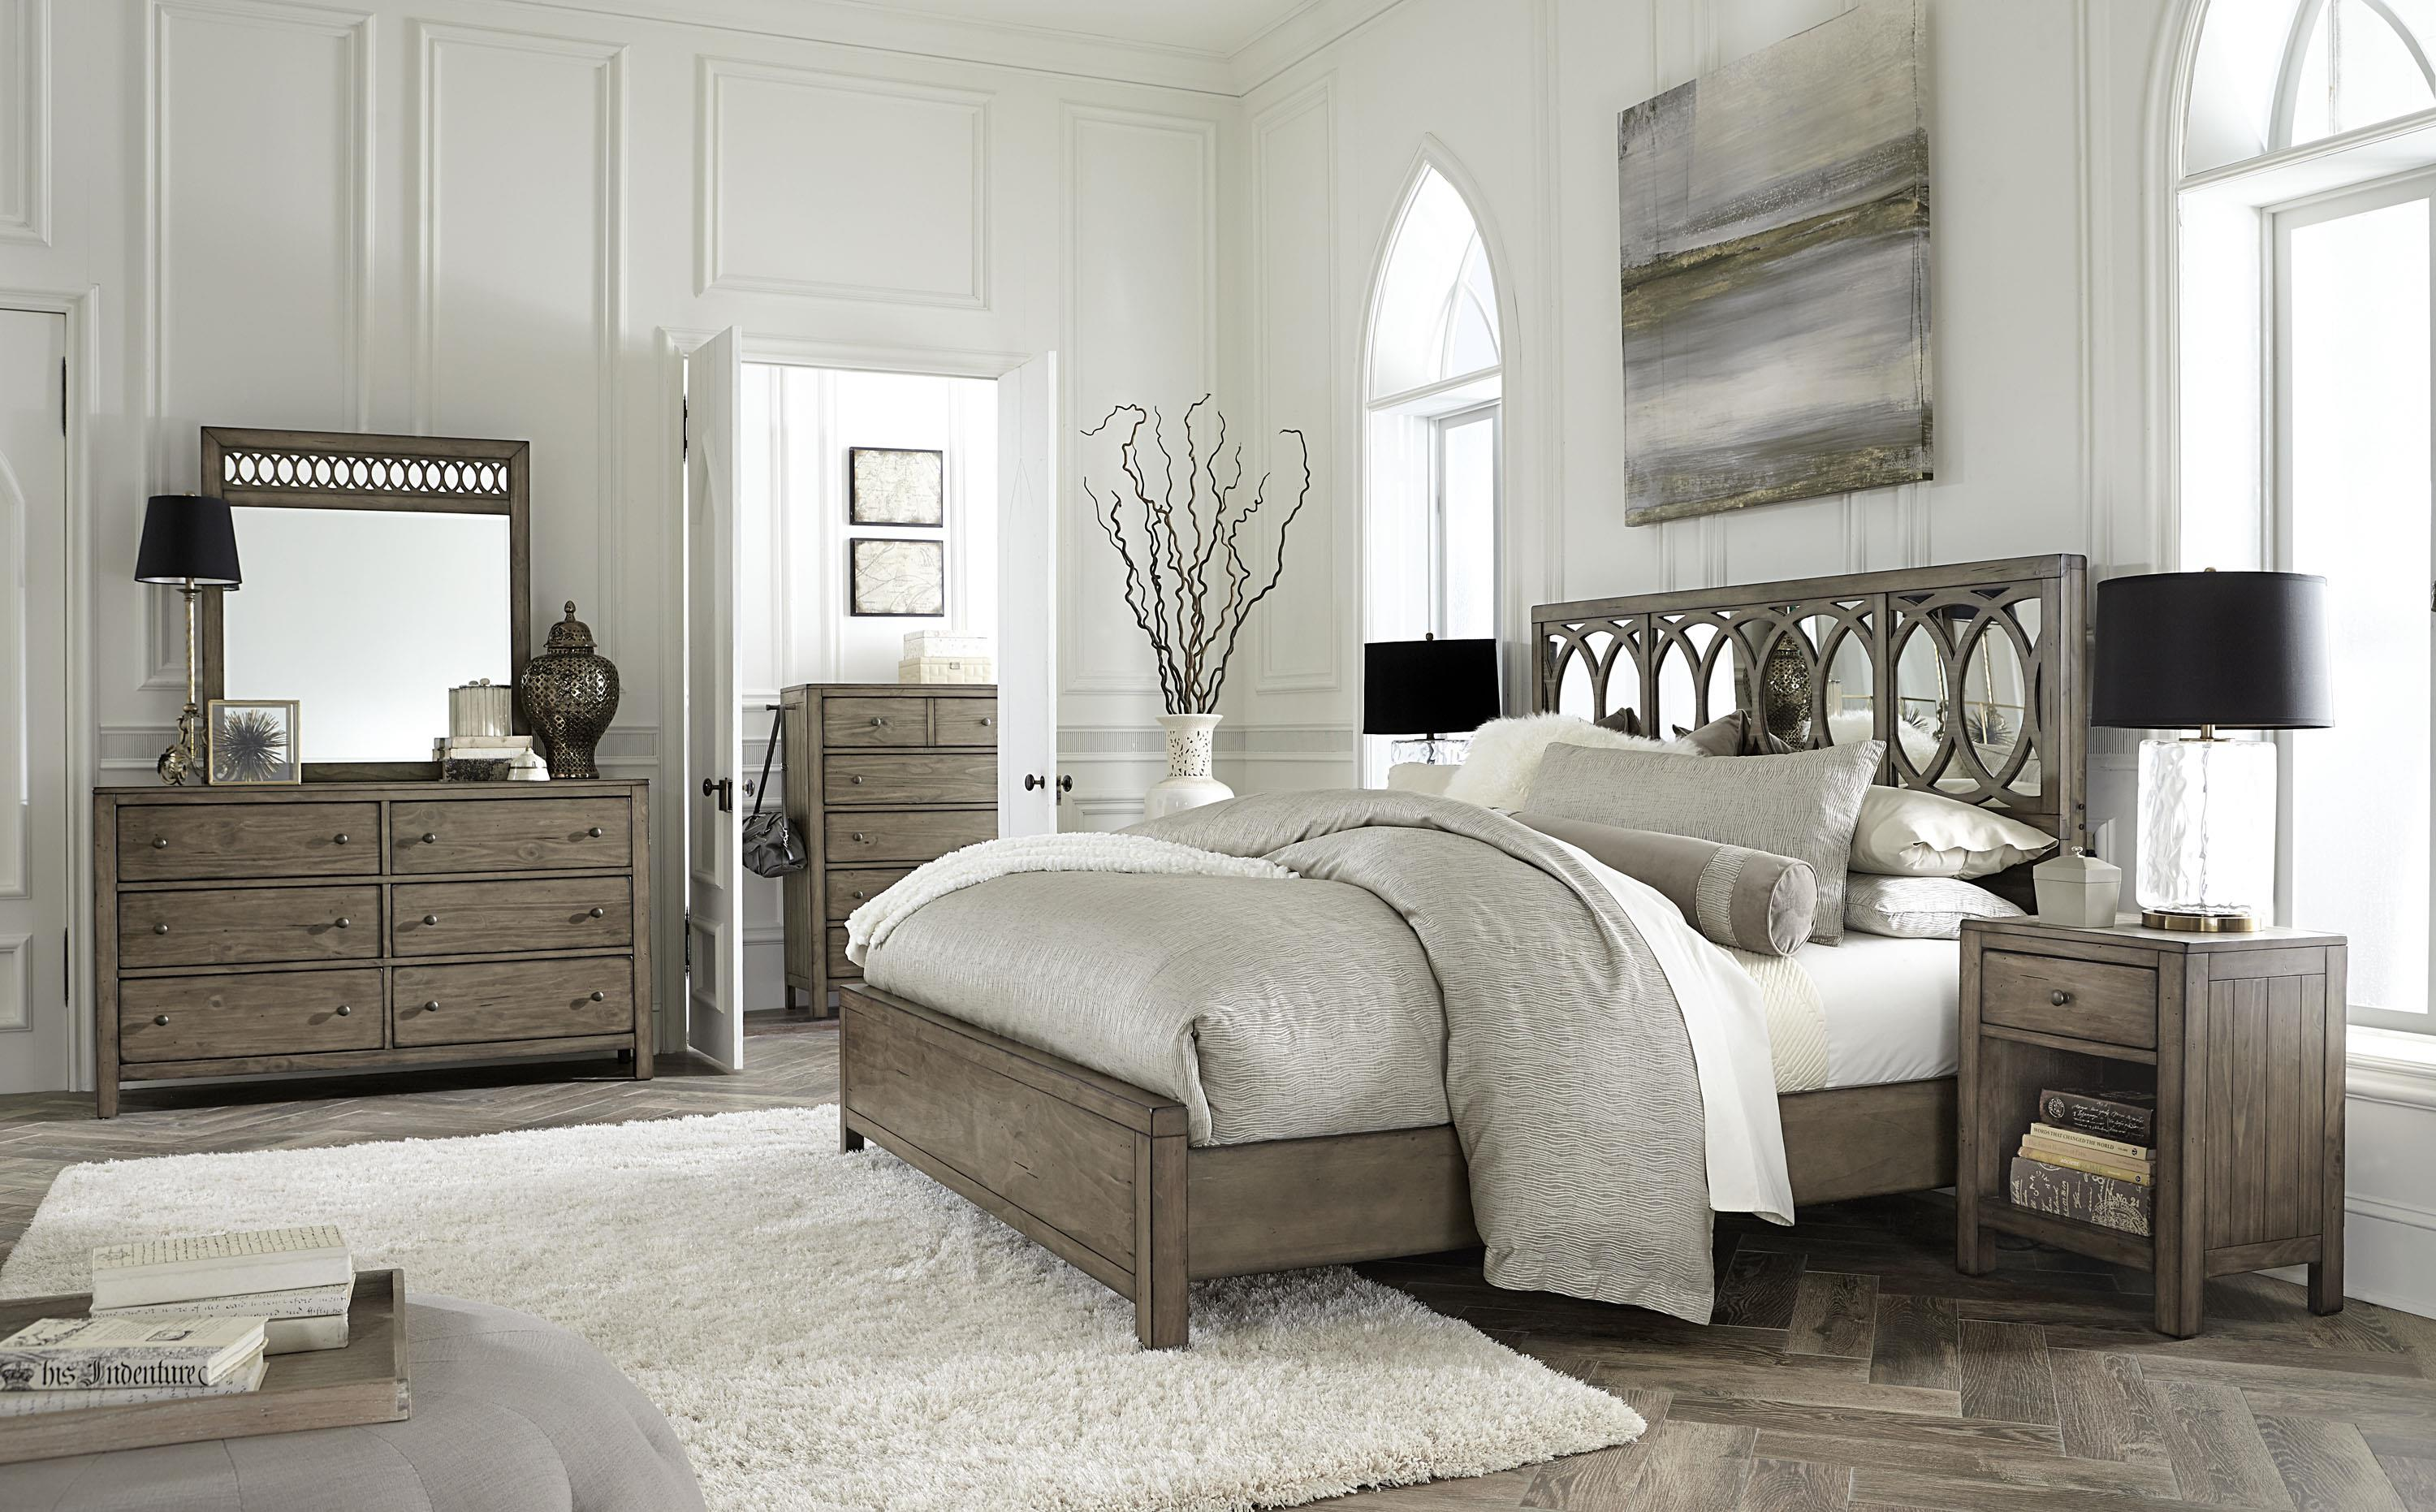 Aspenhome Tildon Queen Bedroom Group - Item Number: I56 Q Bedroom Group 1